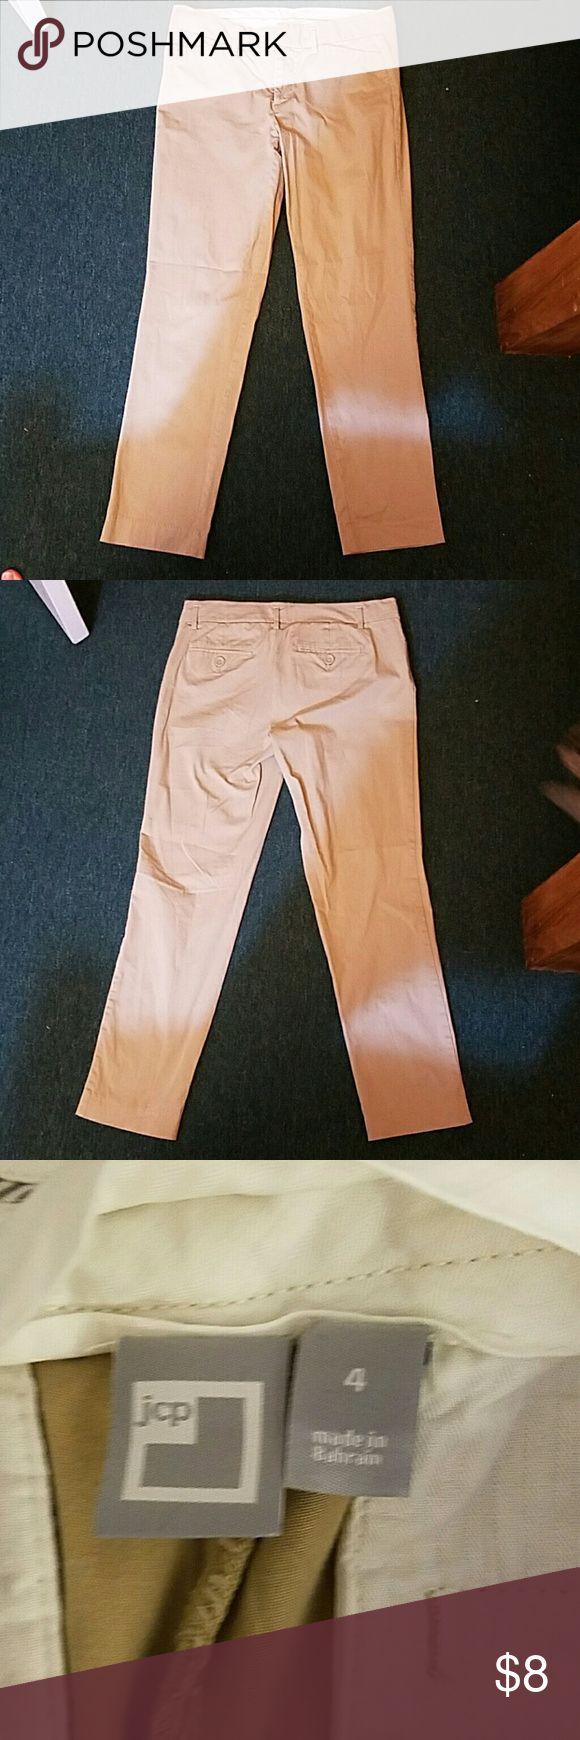 Womens khakis They are brand new Womens slim fit khakis jcpenney Pants Skinny